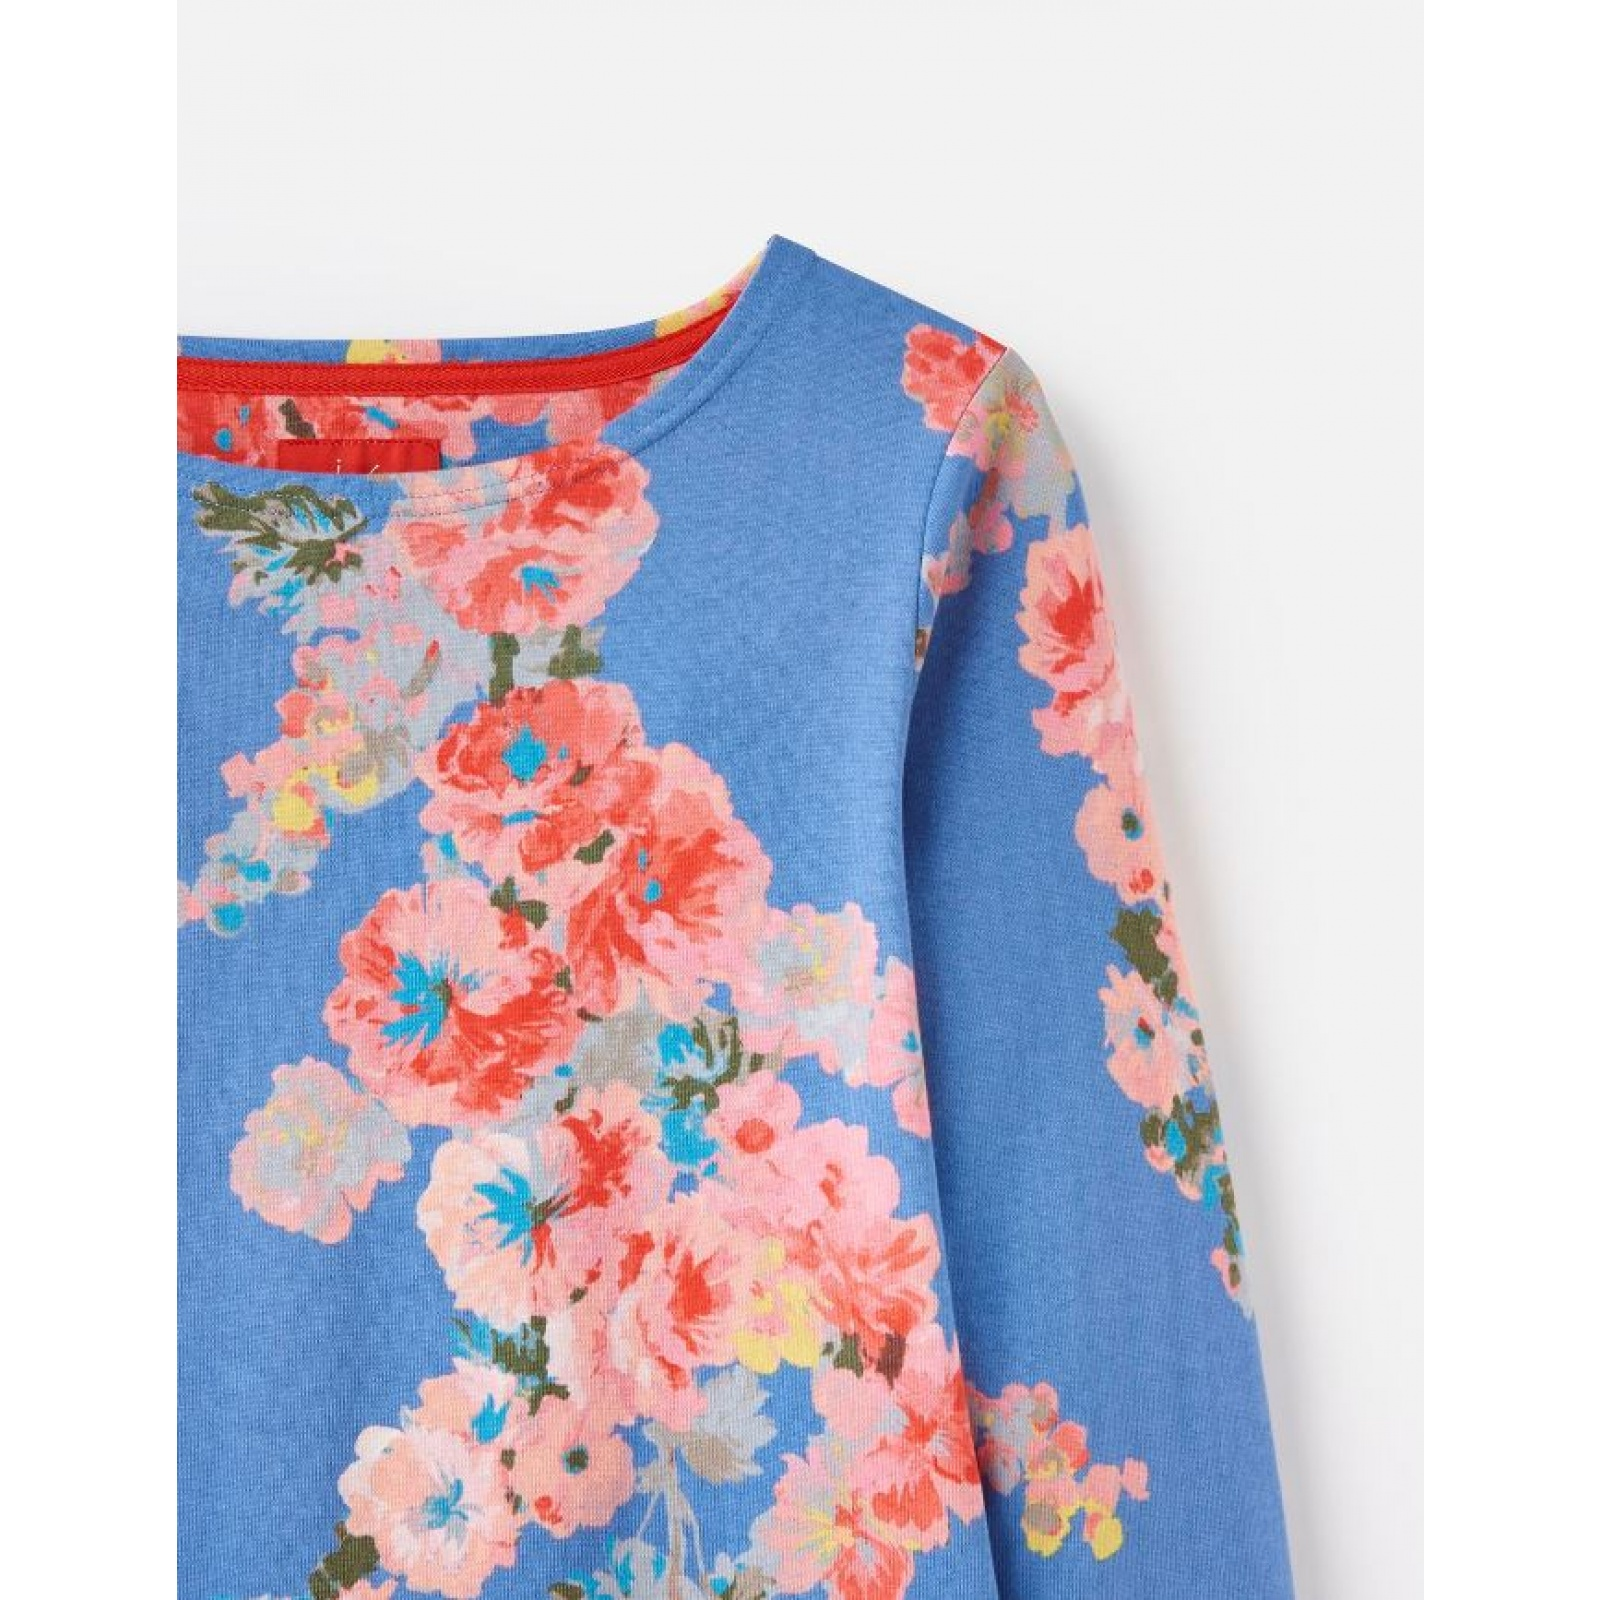 Joules-Harbour-Printed-3-4-Sleeve-Jersey-Top-SS19 thumbnail 7